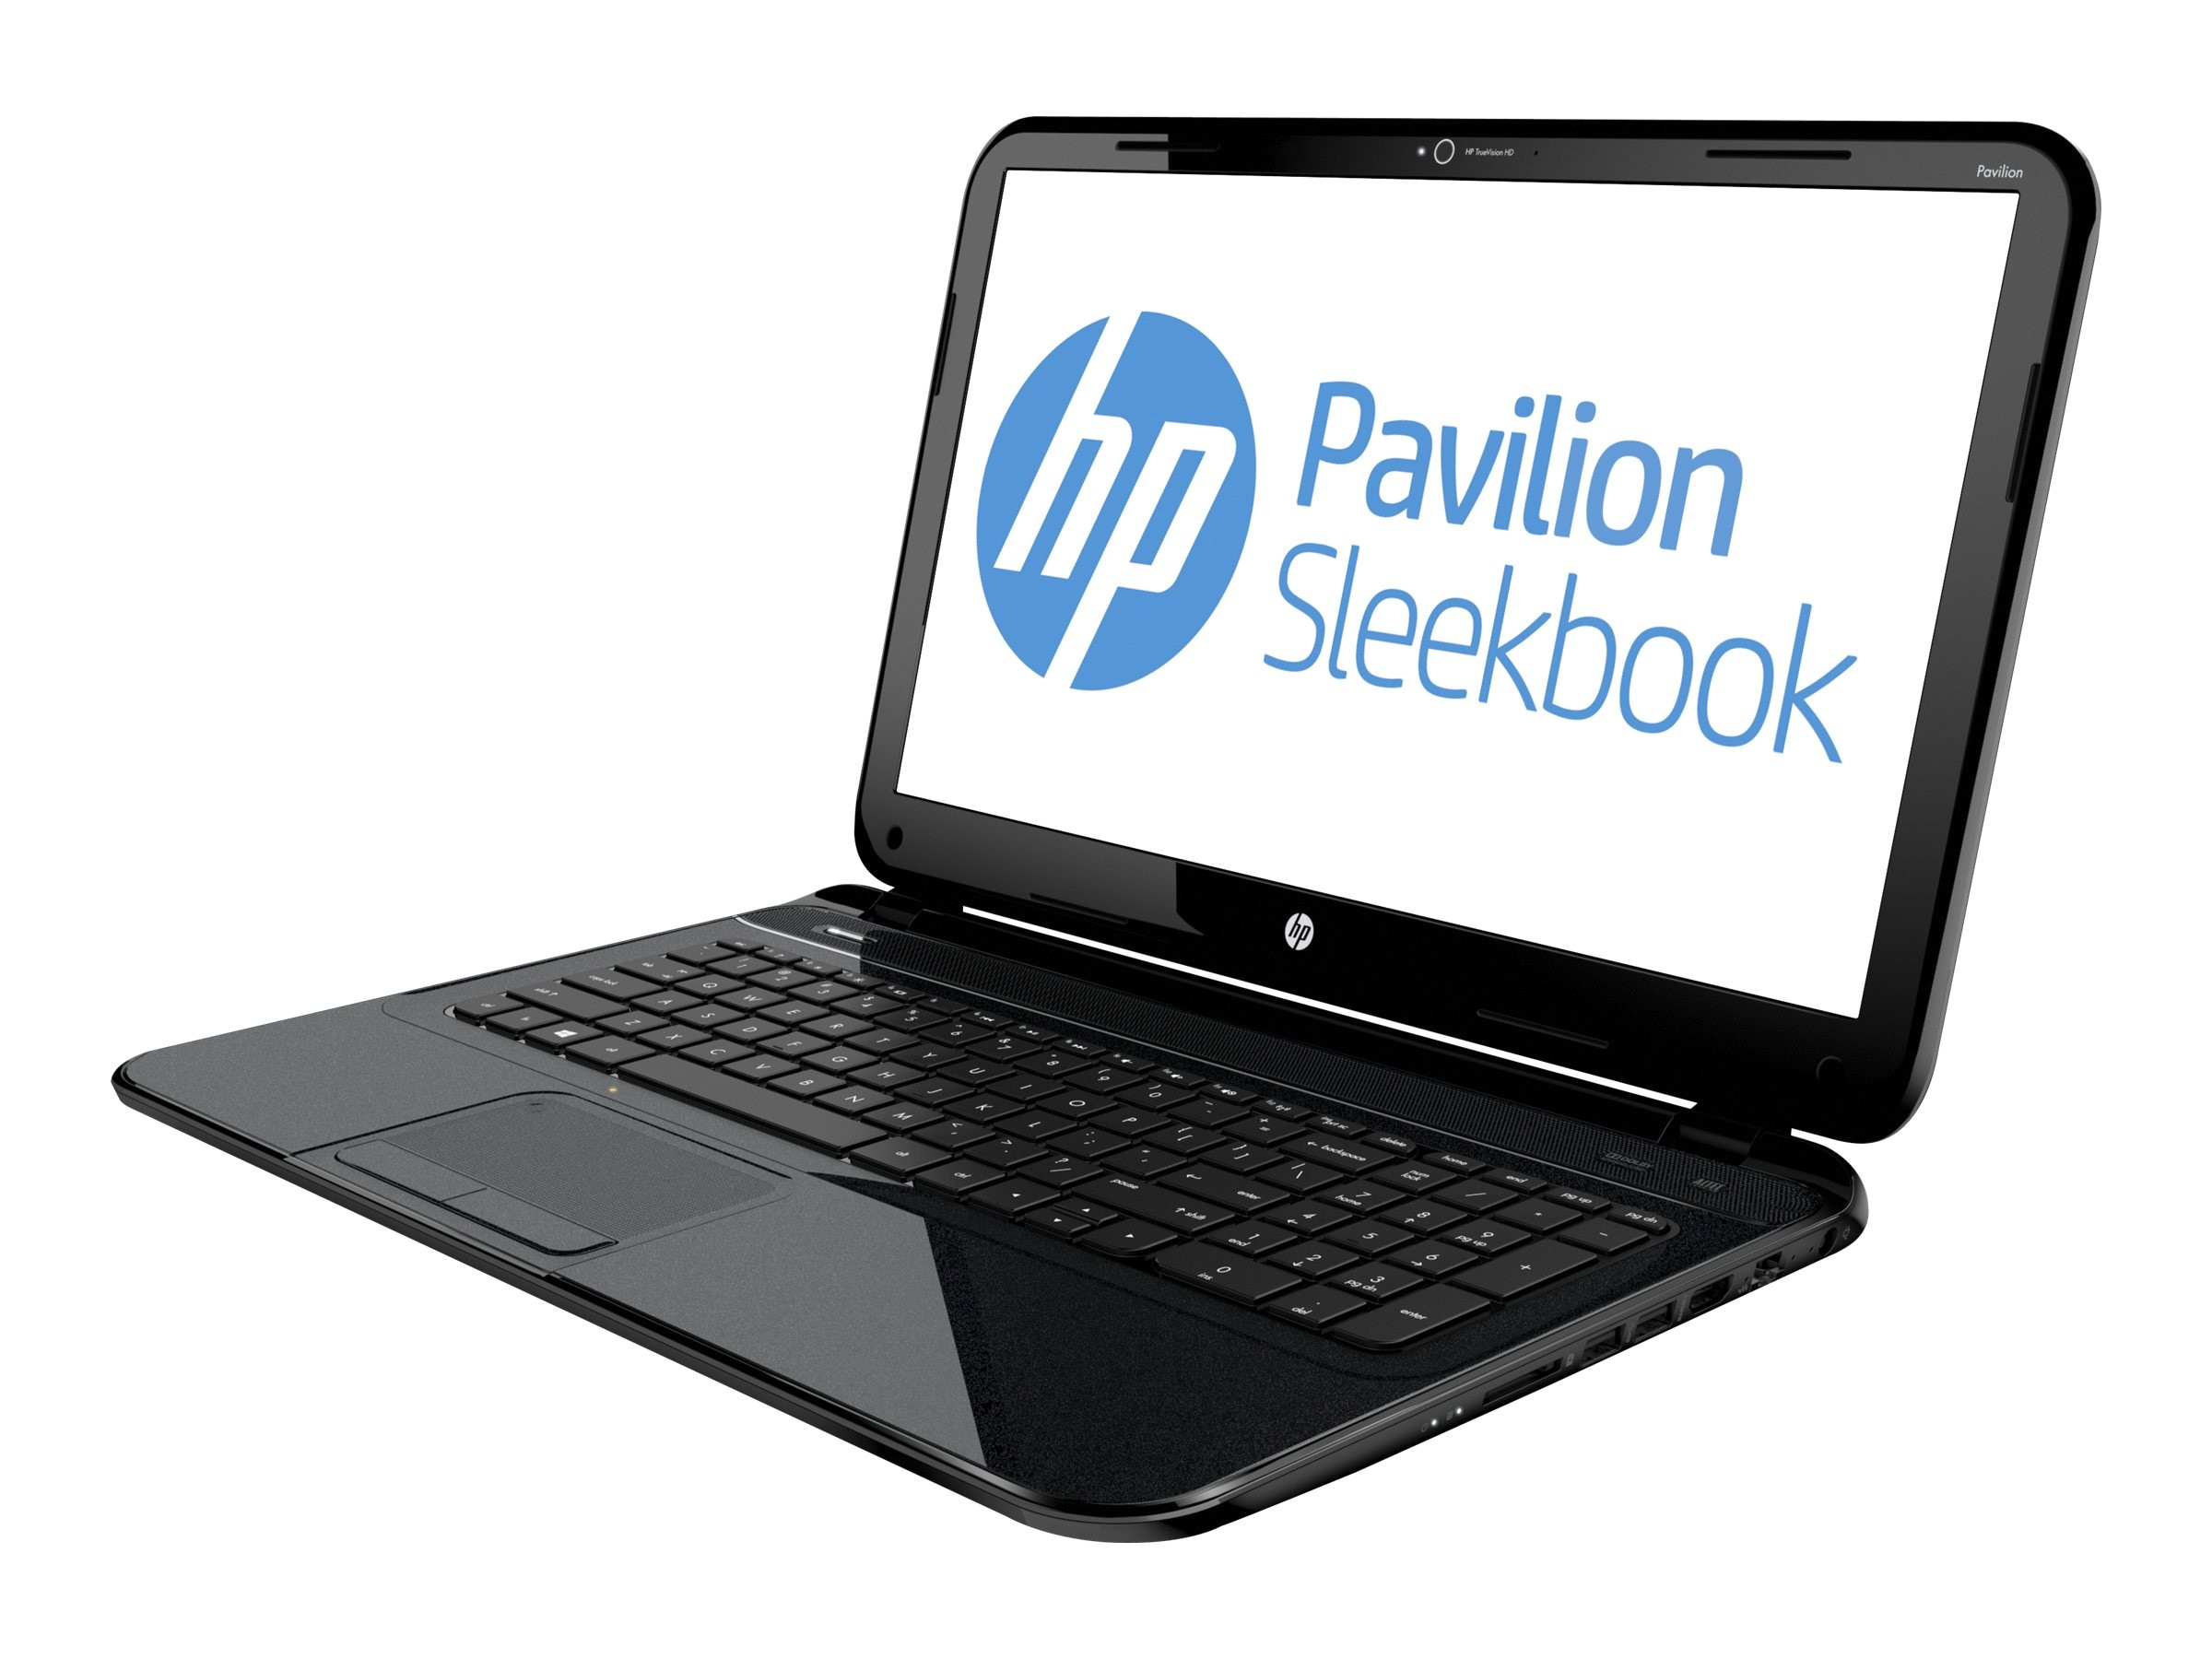 HP Pavilion Sleekbook 15-b140us 1.9GHz Core i3 15.6in display, D1D68UA#ABA, 15176527, Notebooks